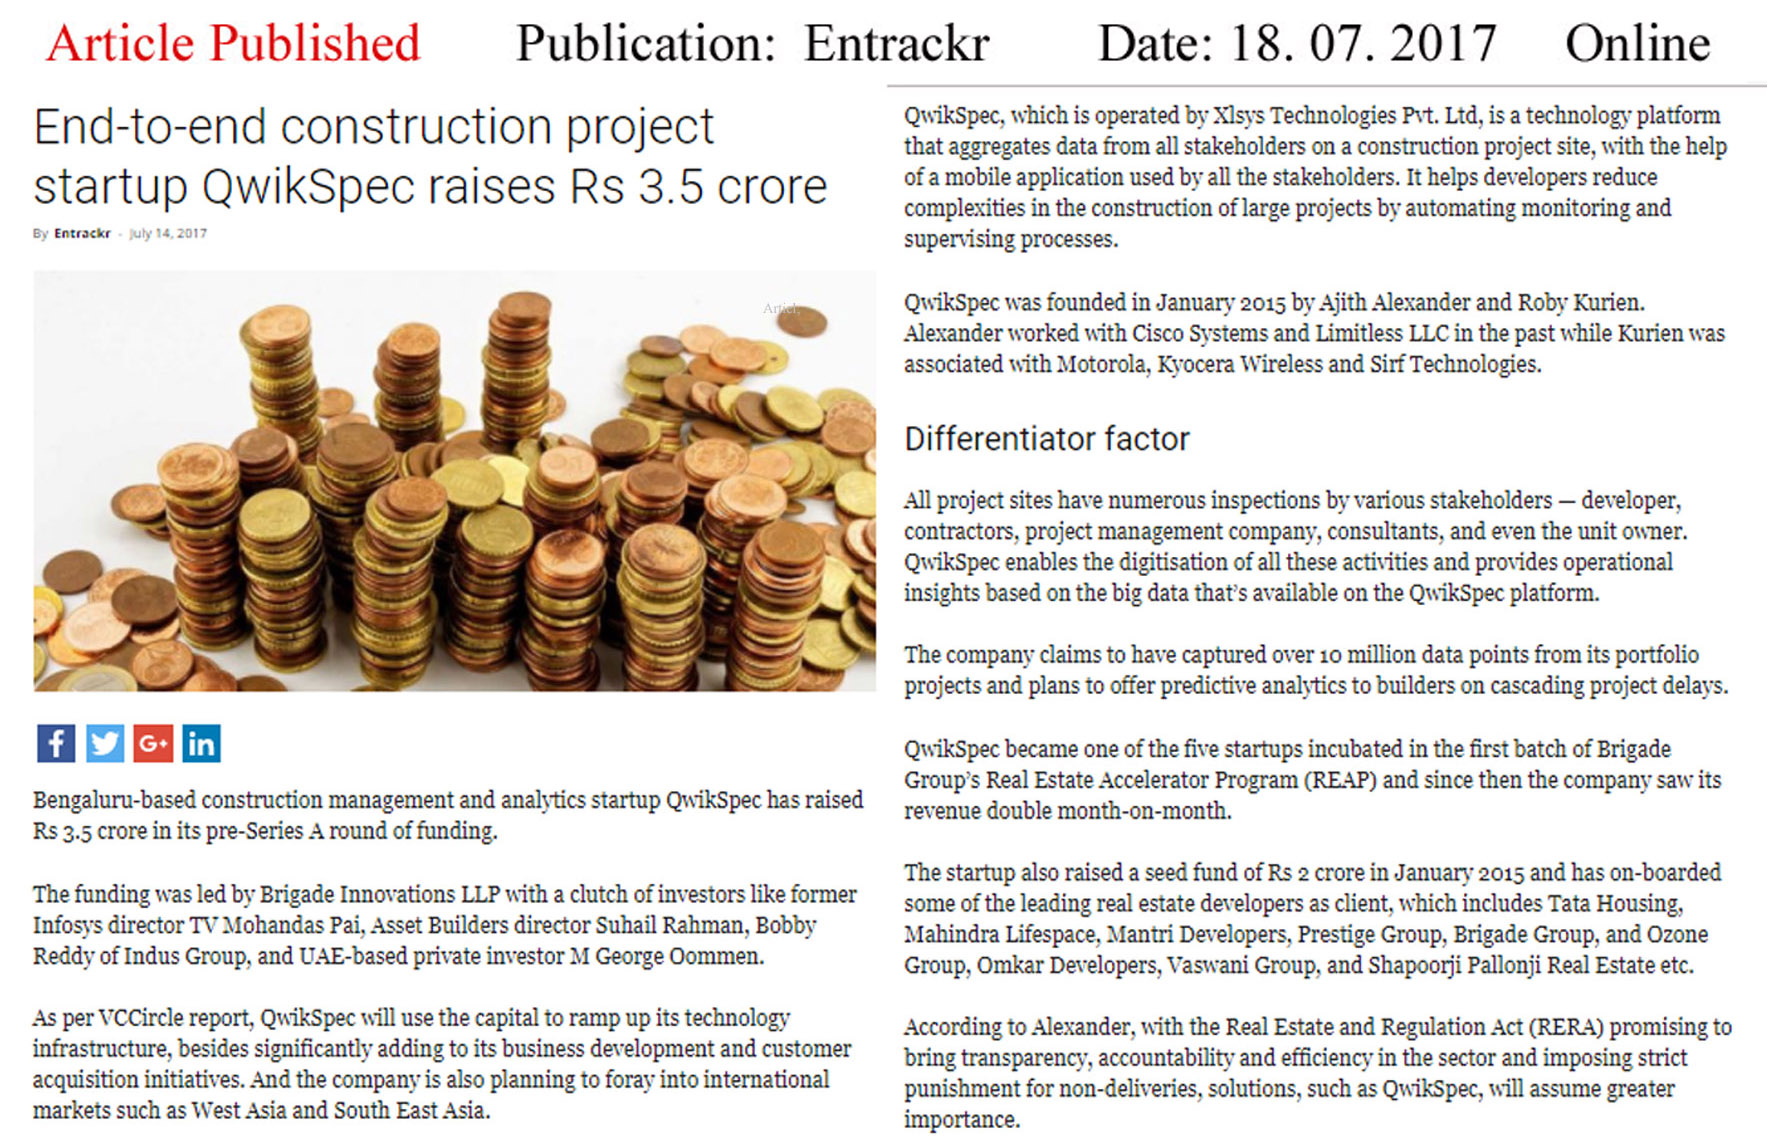 End-to-end Contraction projects Startups raises Rs. 3.5 crores—Entrackr